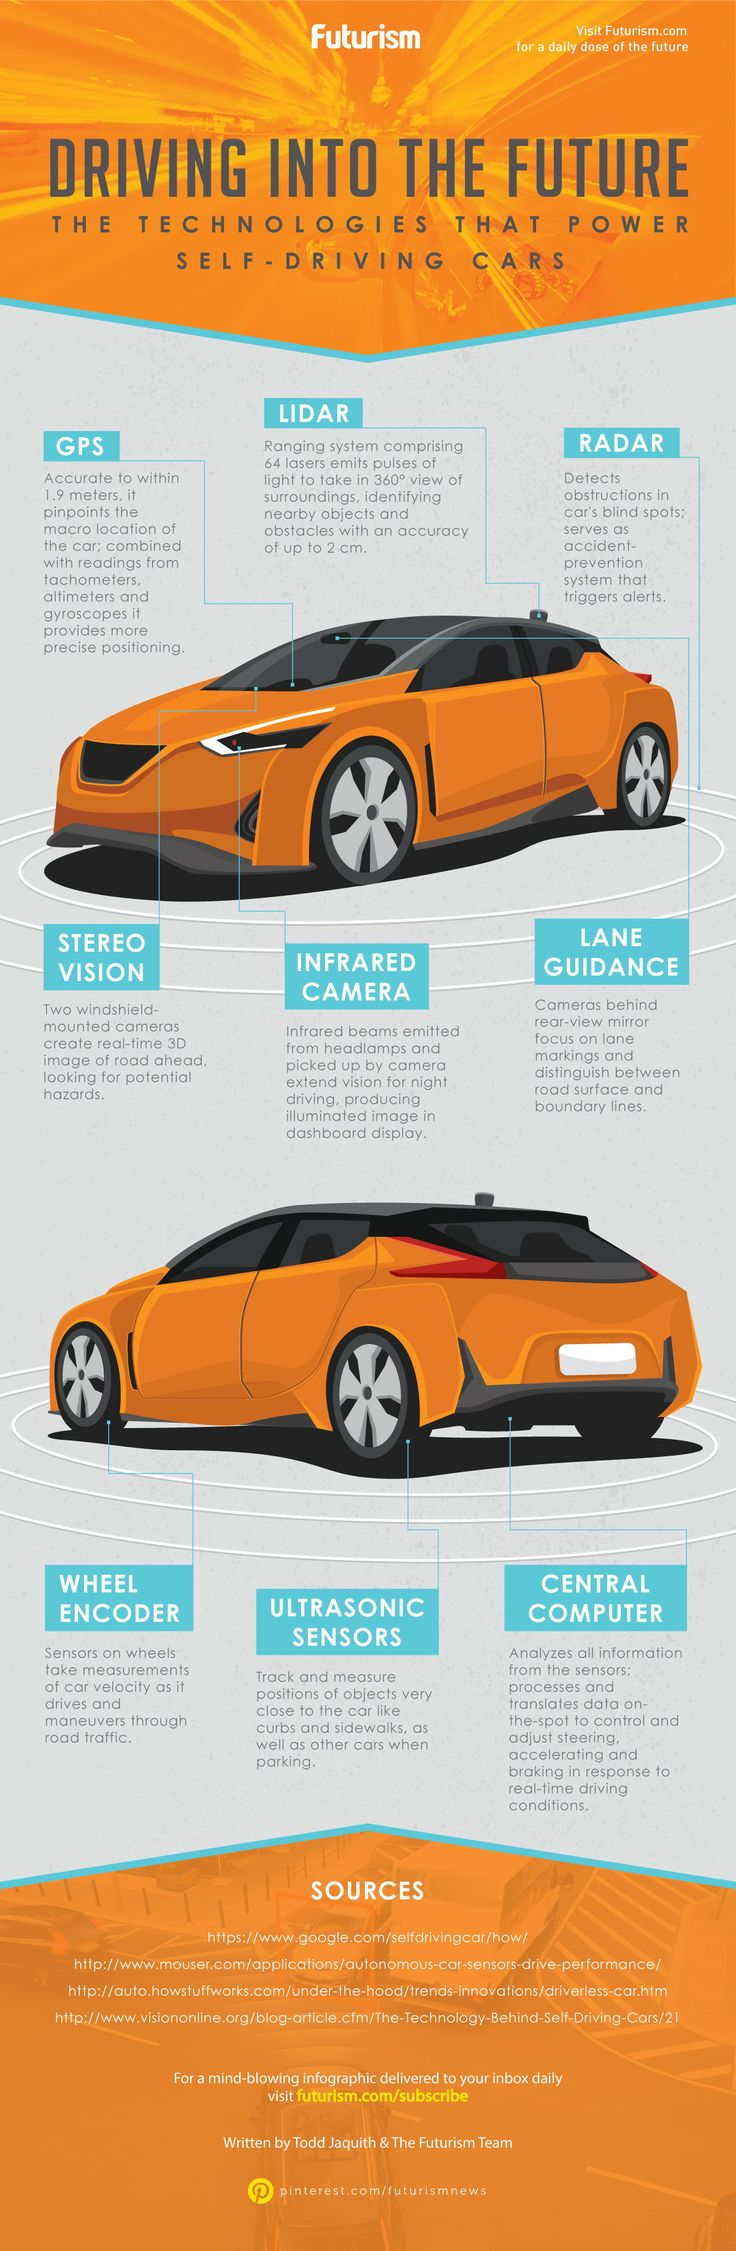 Ever wonder how self-driving cars work?   Here are the core technologies that allow us to keep our hands off the wheel. http://futurism.com/images/the-technologies-that-power-self-driving-cars-infographic/?utm_campaign=coschedule&utm_source=pinterest&utm_medium=Futurism&utm_content=The%20Technologies%20That%20Power%20Self-Driving%20Cars%20%5BINFOGRAPHIC%5D